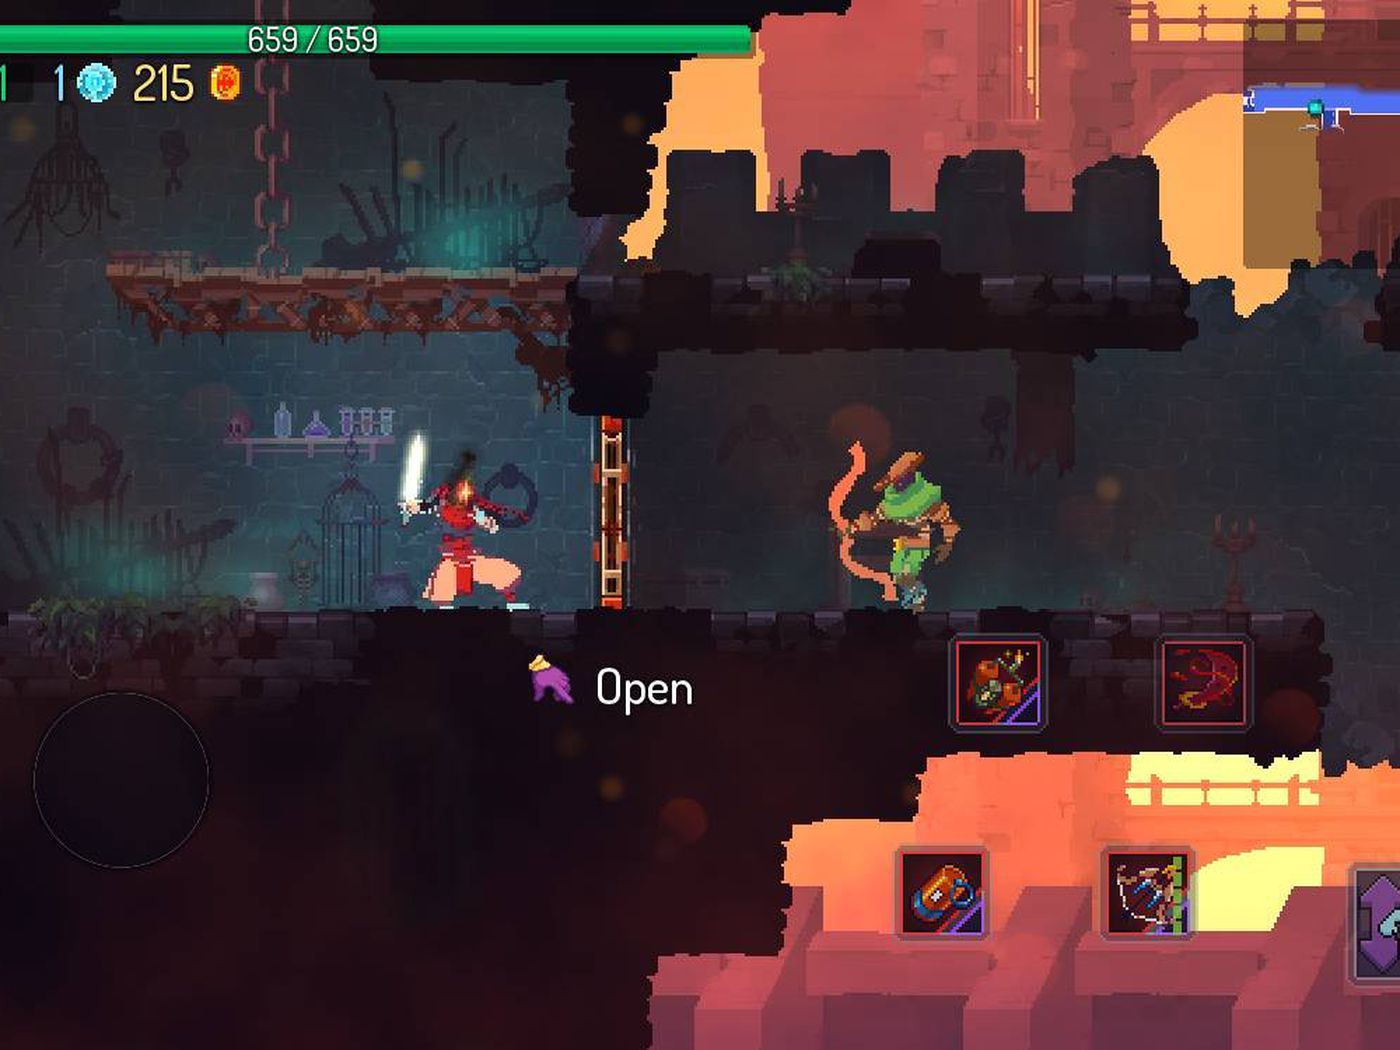 Dead Cells is bringing its brutal action to iPhone this